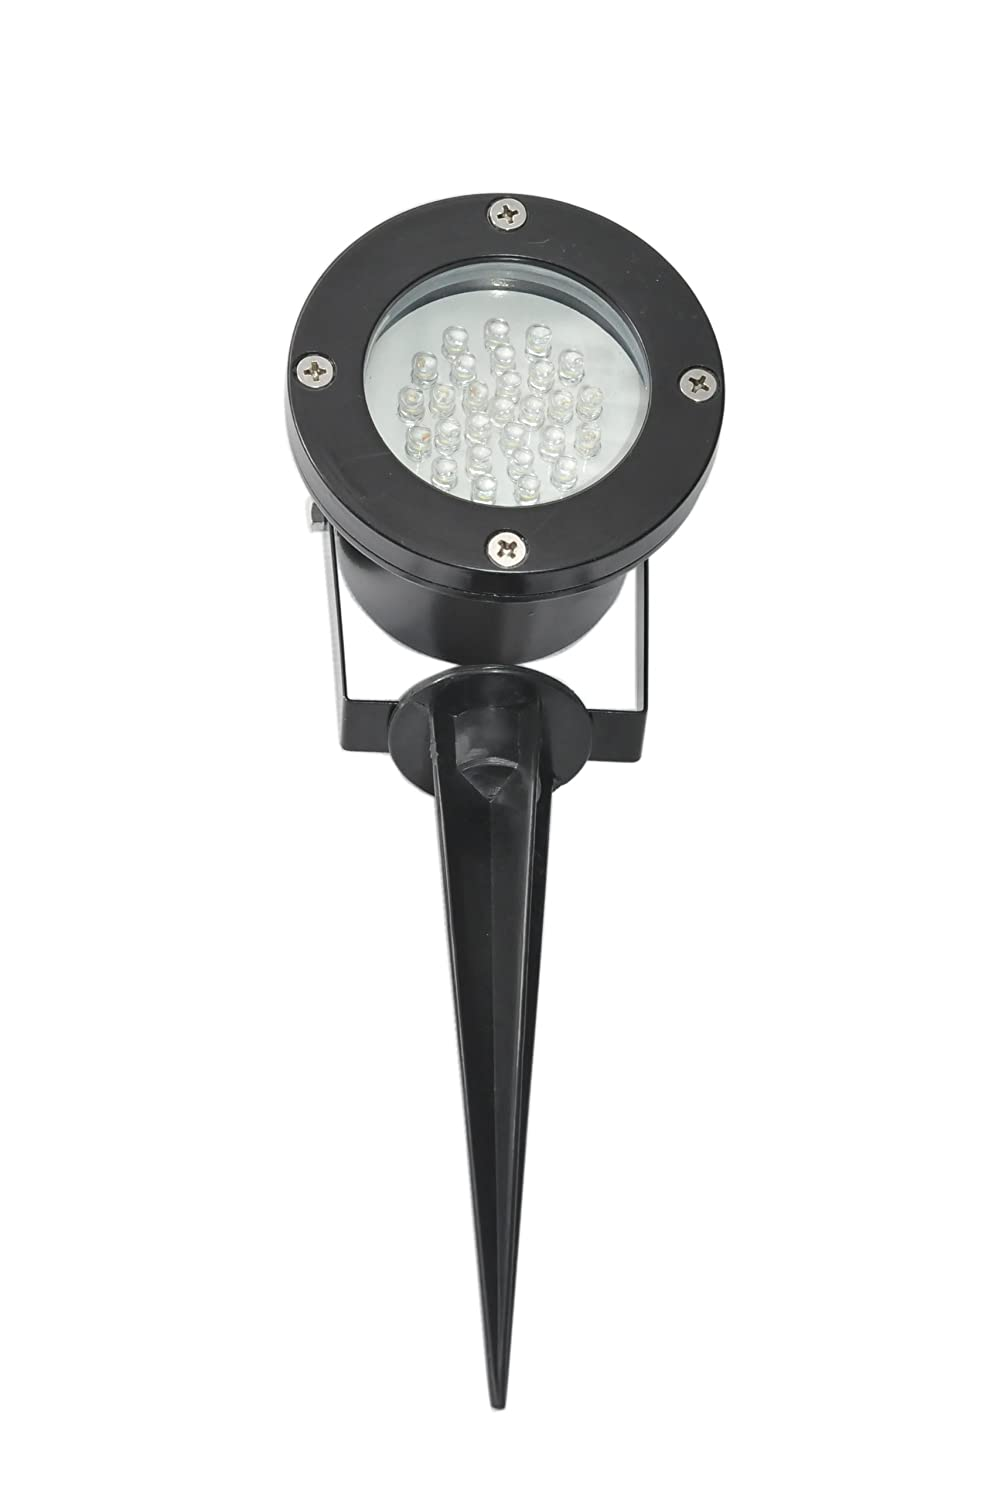 Outdoor Residential Lighting Fixtures Amazon silbo sb8023 12v 3 watt led outdoor residential or amazon silbo sb8023 12v 3 watt led outdoor residential or commercial landscape garden flood light fixture daylight white 5500k 25 watt equal garden workwithnaturefo